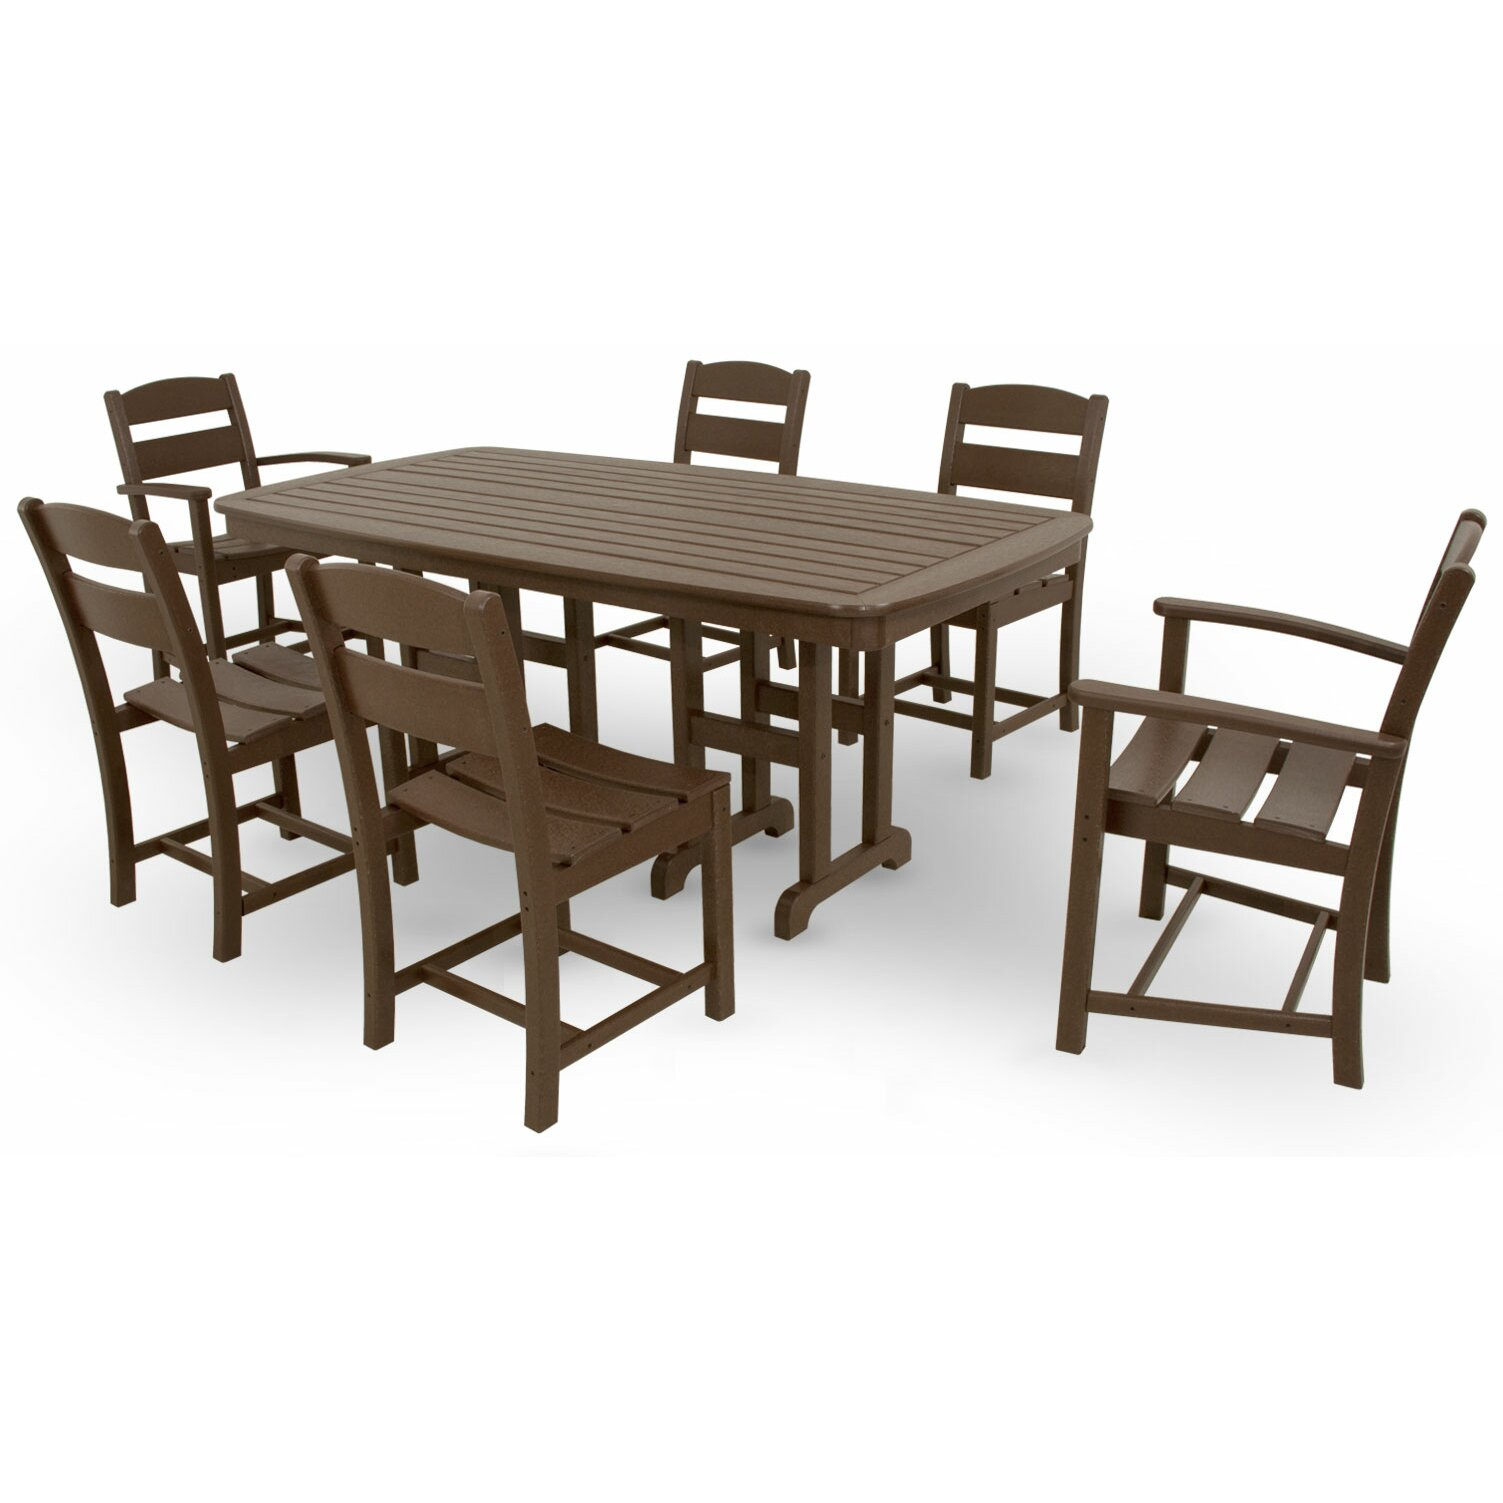 Ivy terrace ivy terrace 7 piece dining set reviews wayfair for Furniture 7 reviews